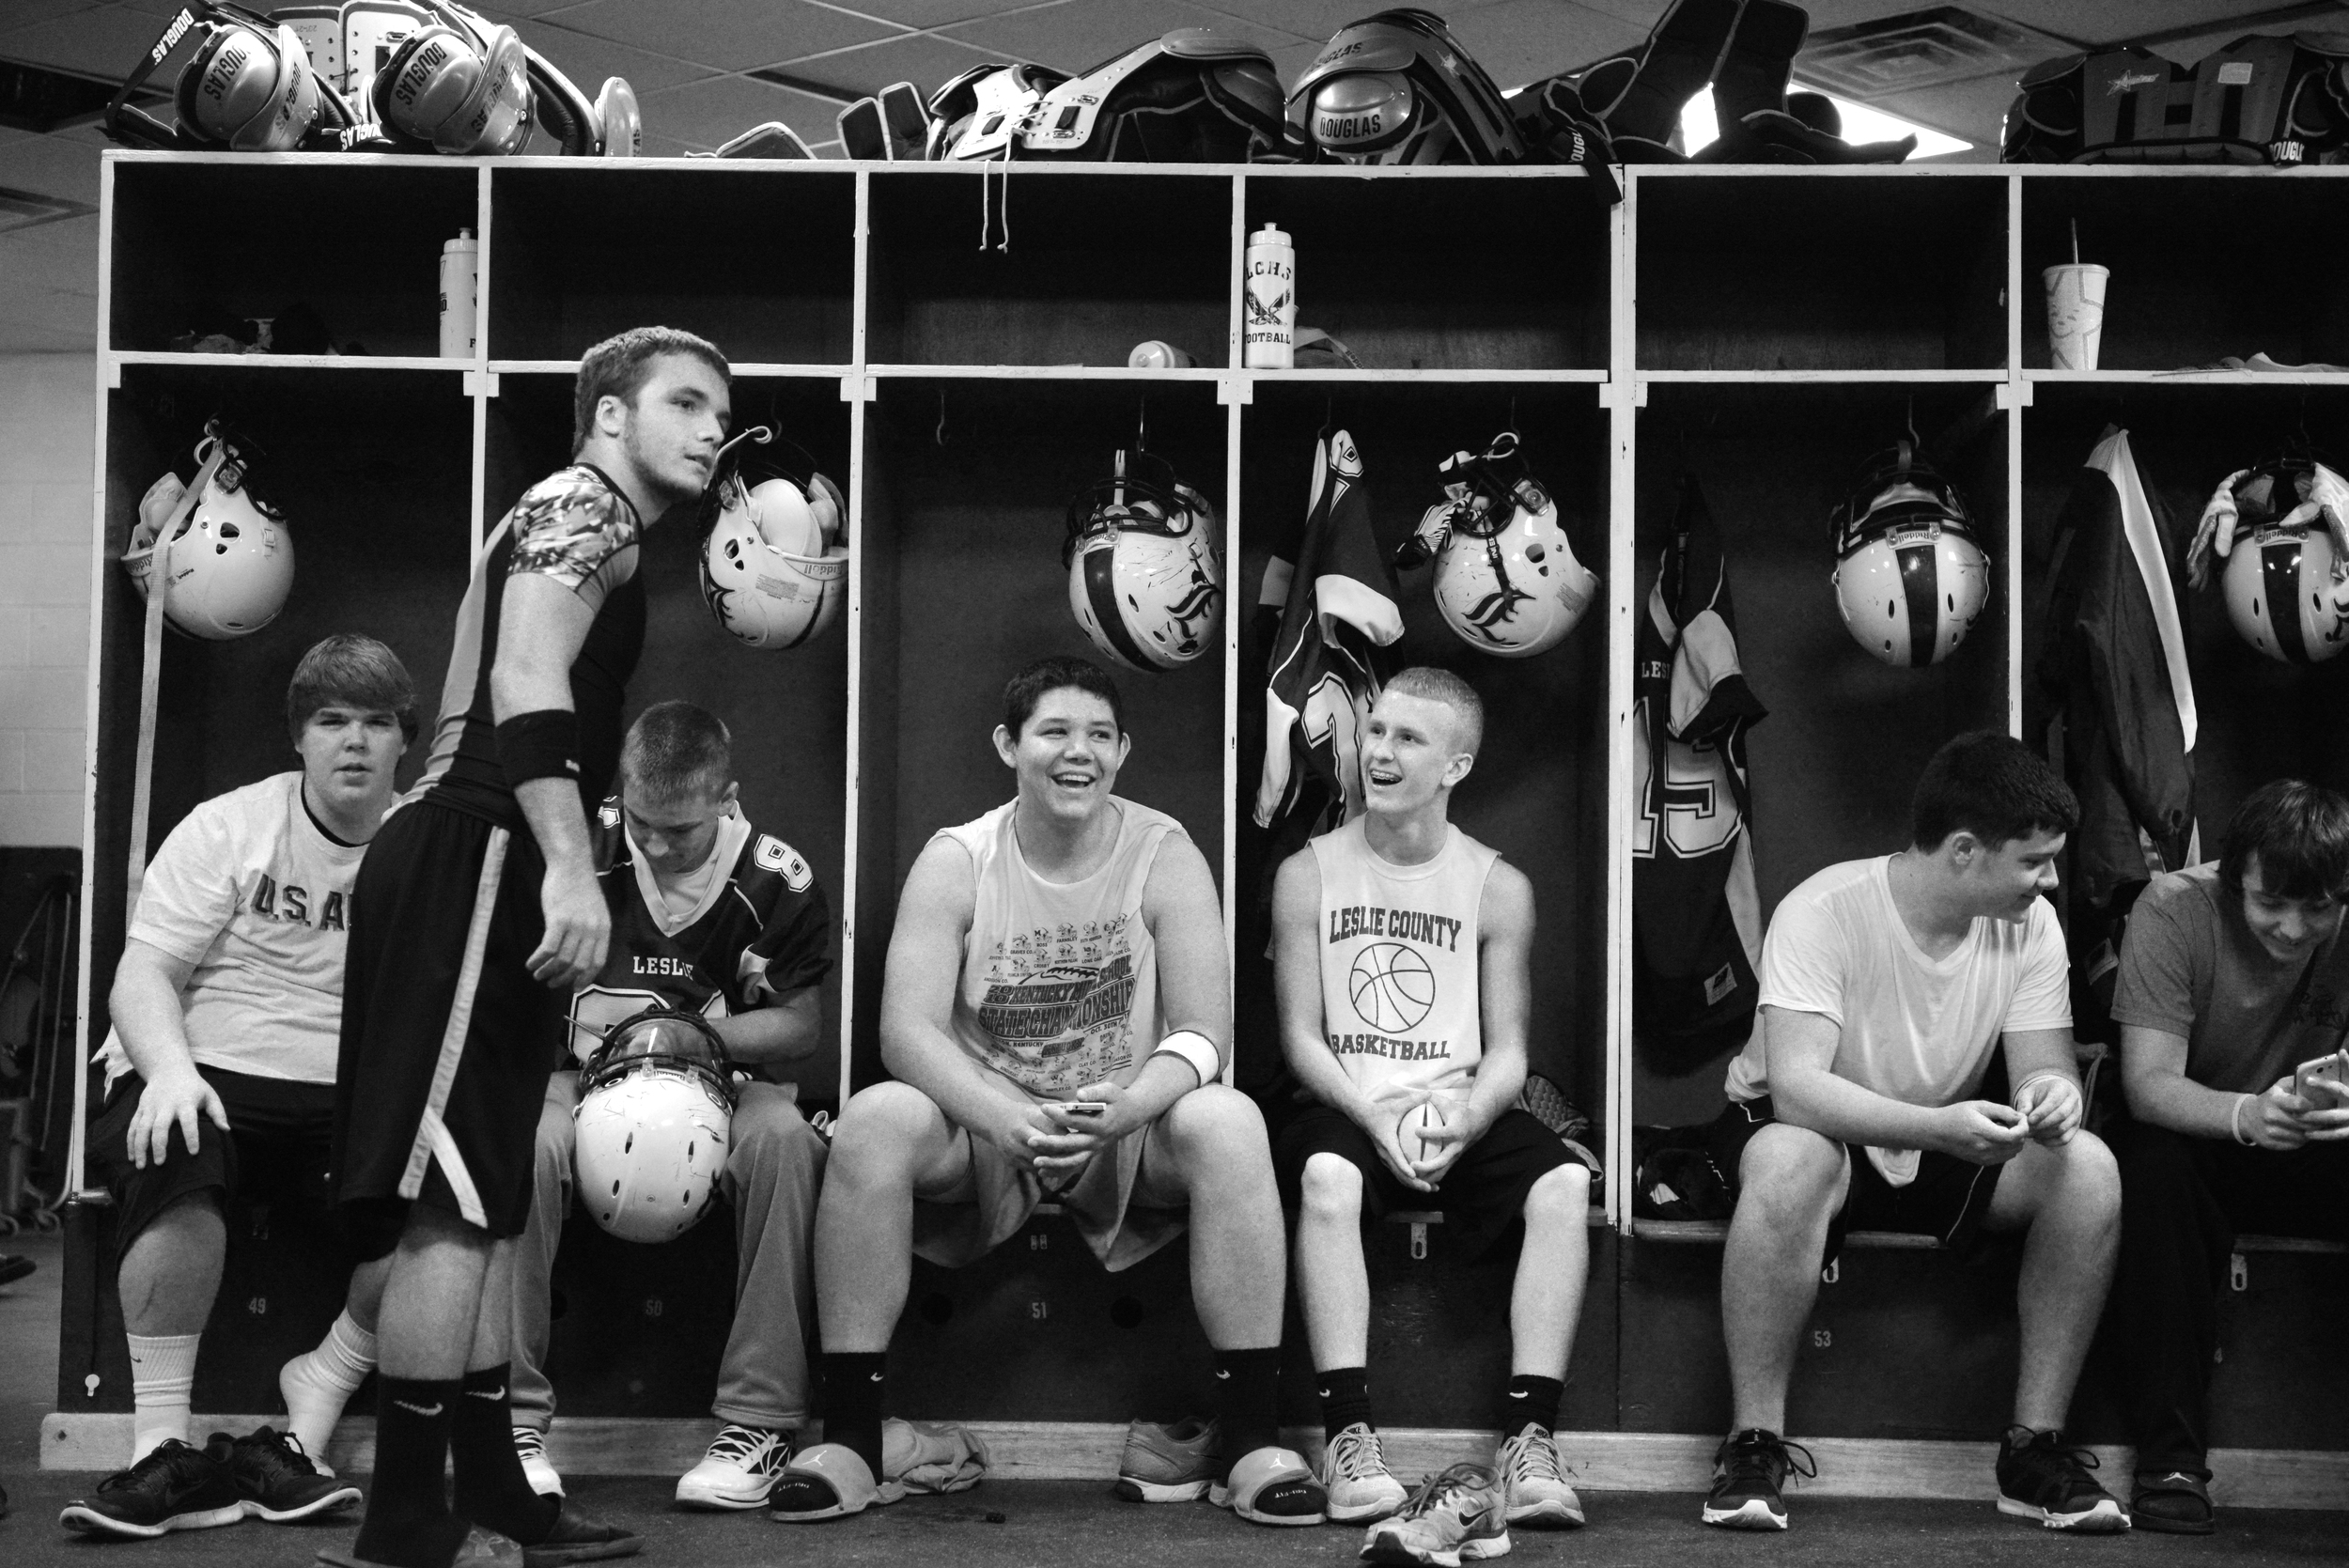 Players socialize in the locker room before taking on Betsy Layne.